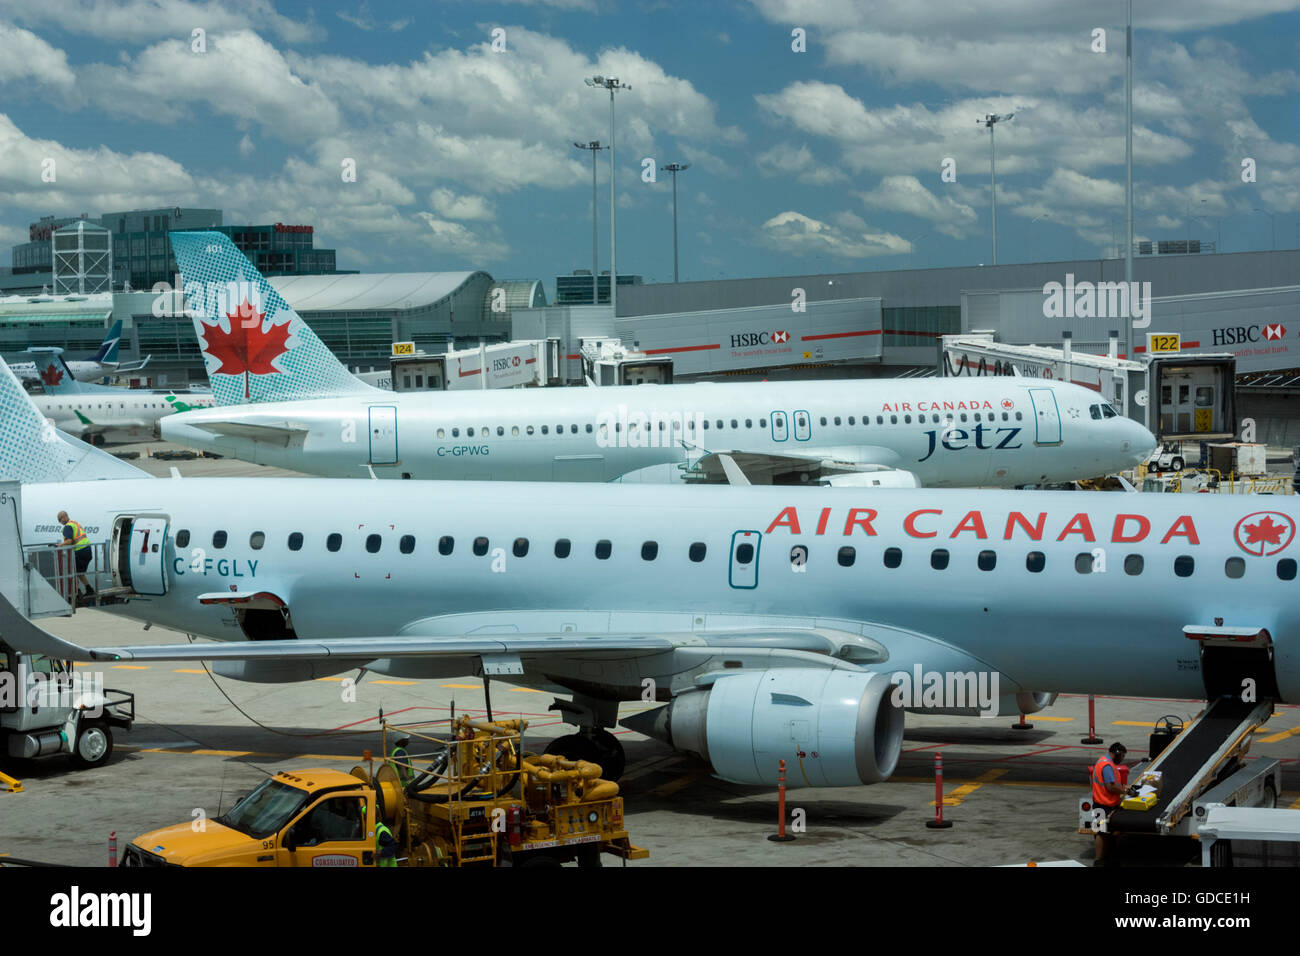 Air Canada jets at Toronto Pearson International Airport - Stock Image